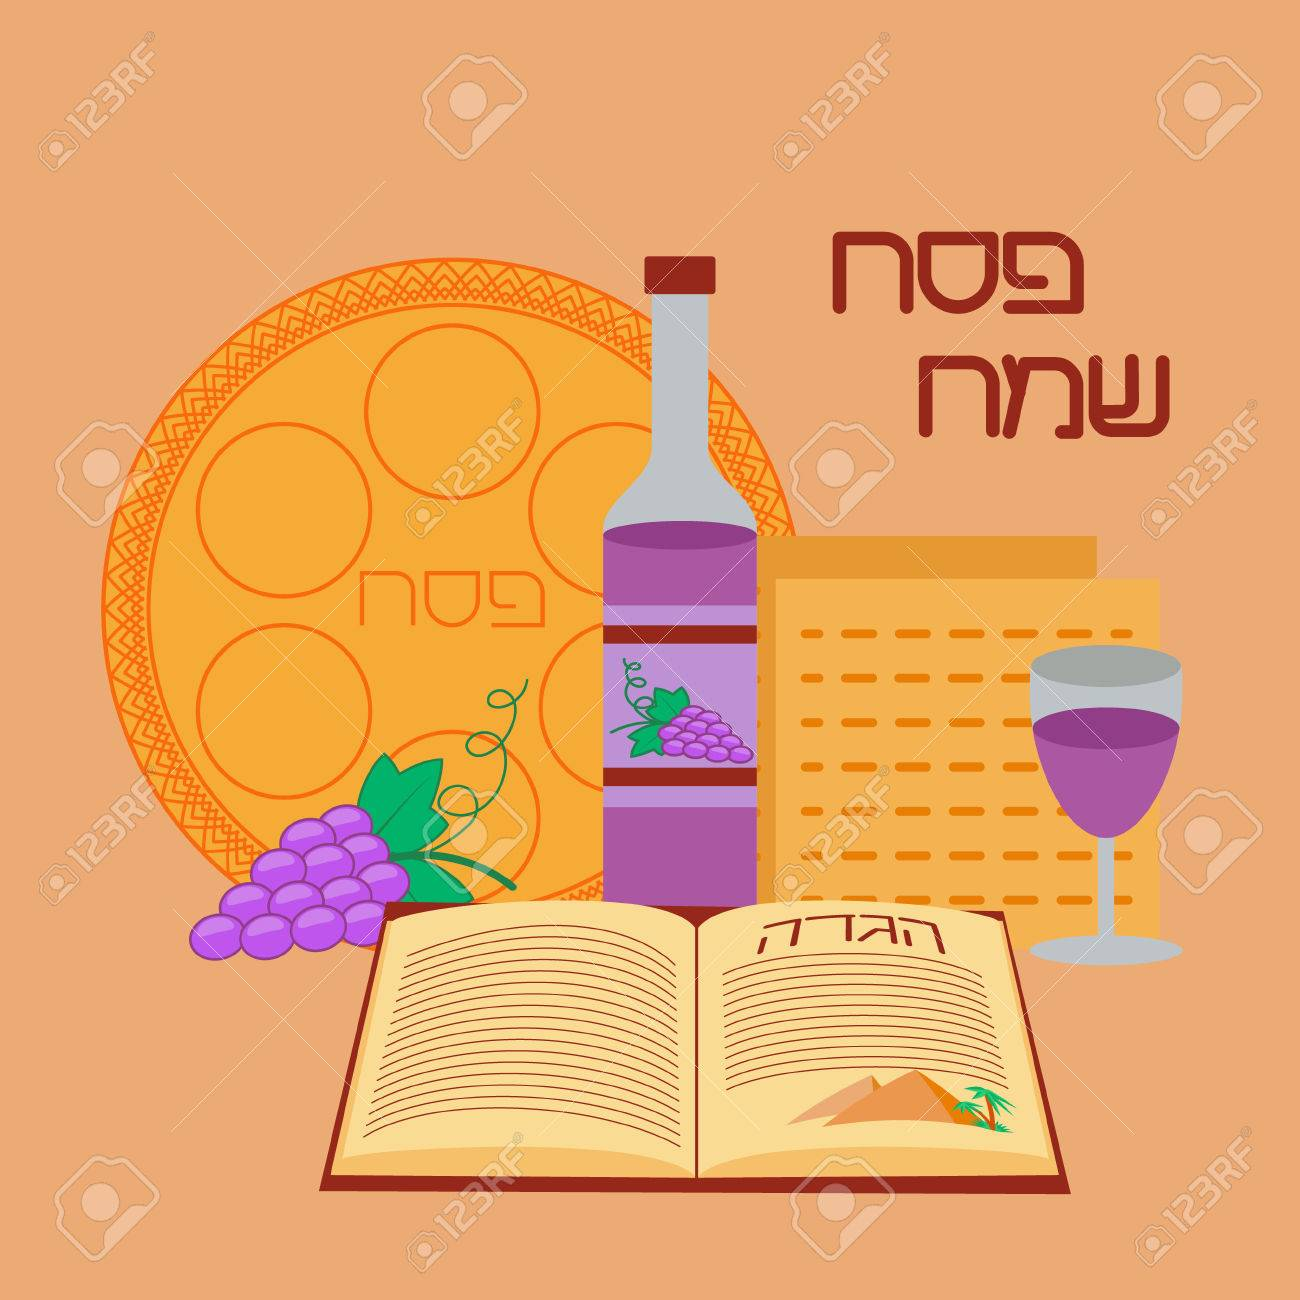 528 passover seder cliparts stock vector and royalty free